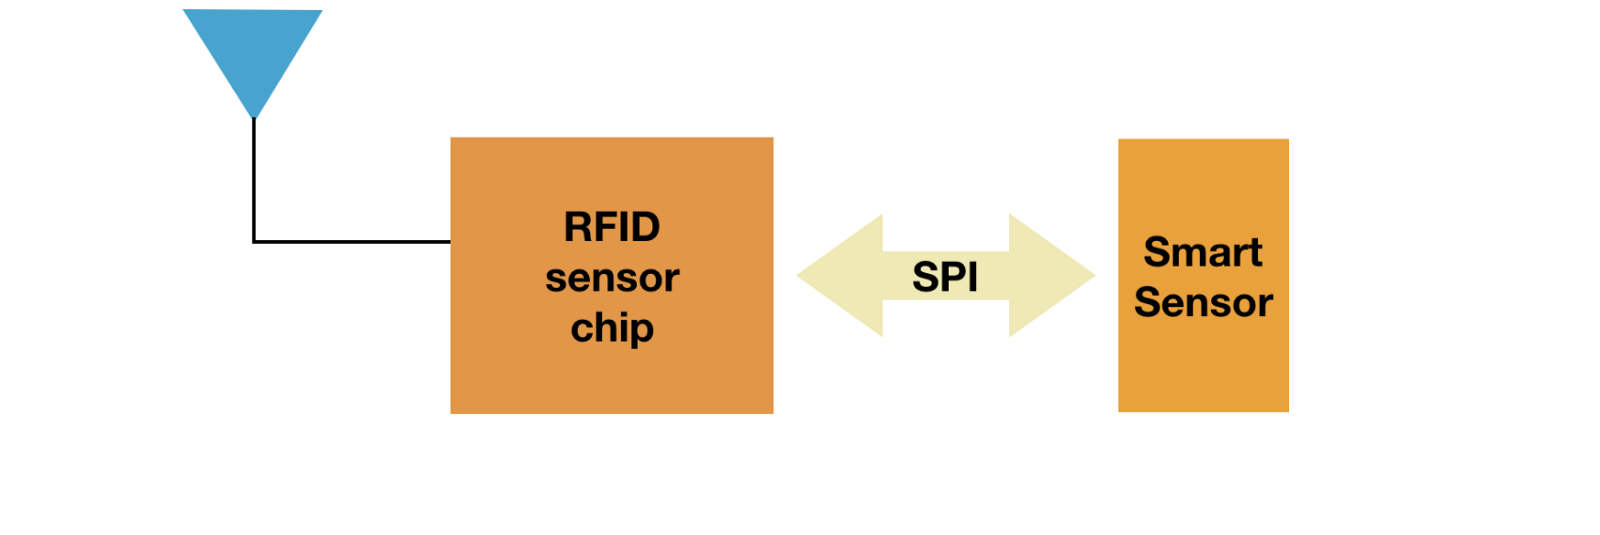 Uhf Rfid From Passive Identifiers To Sensor Tags Block Diagram Of A Tag Chip Components Such As Ams Sl900a Or Farsens Rocky100 Are Very Simple Implement Into Design But Way More Expensive Than Basic